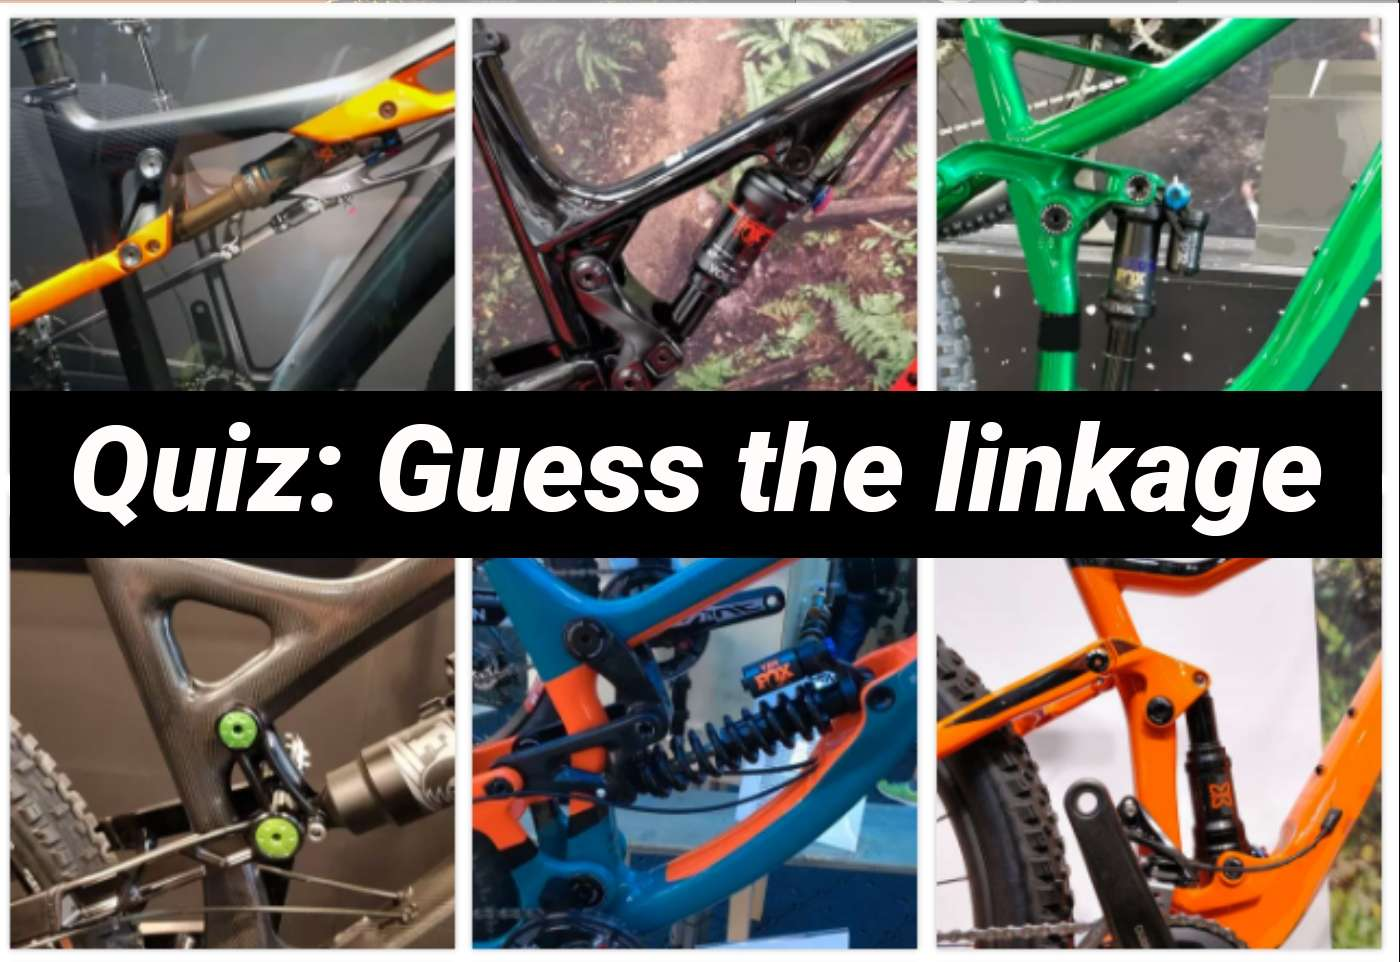 QUIZ: Guess the linkage